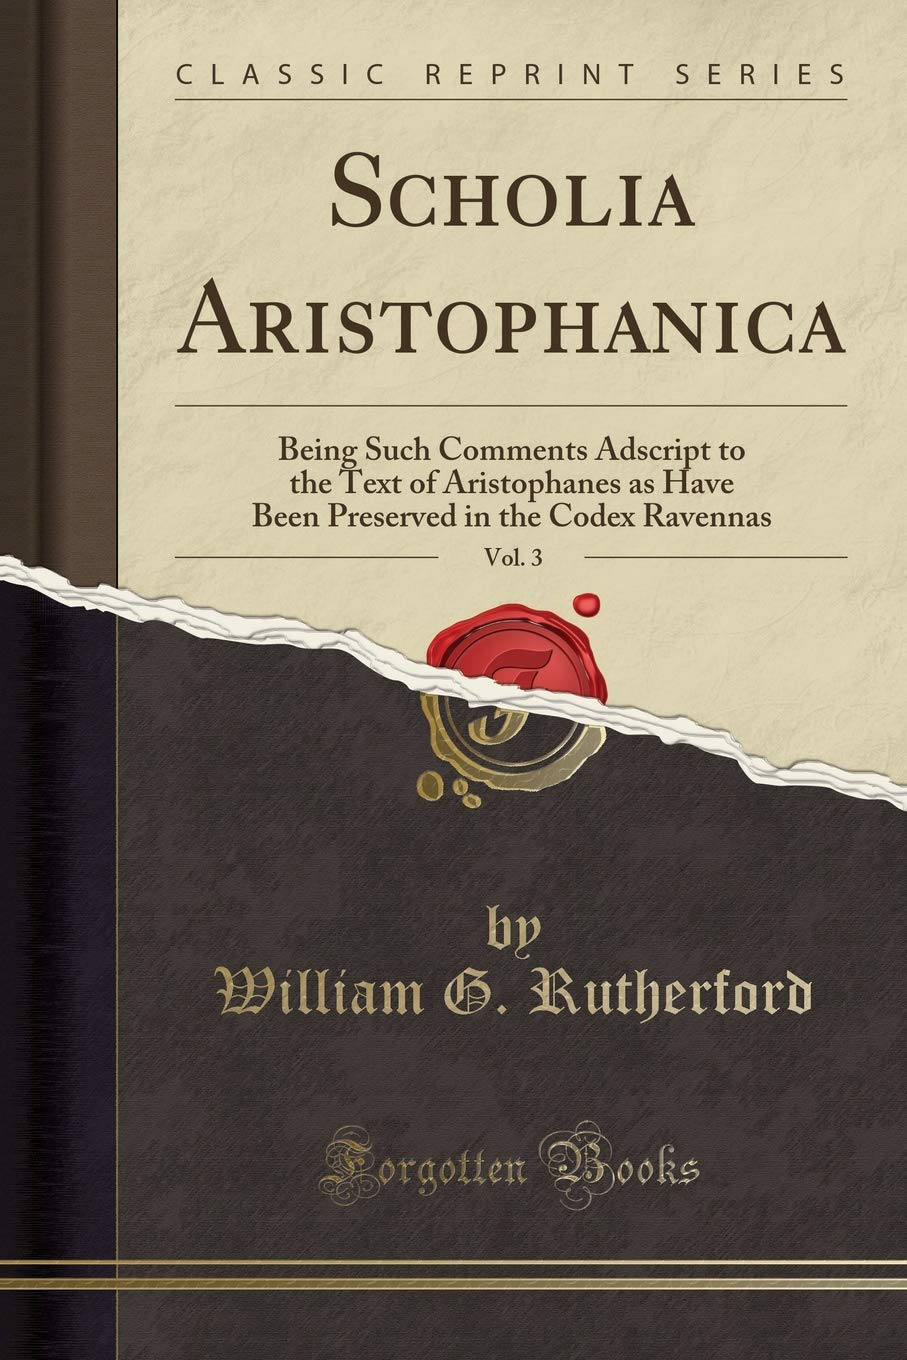 Scholia Aristophanica, Vol. 3: Being Such Comments Adscript to the Text of Aristophanes as Have Been Preserved in the Codex Ravennas (Classic Reprint) pdf